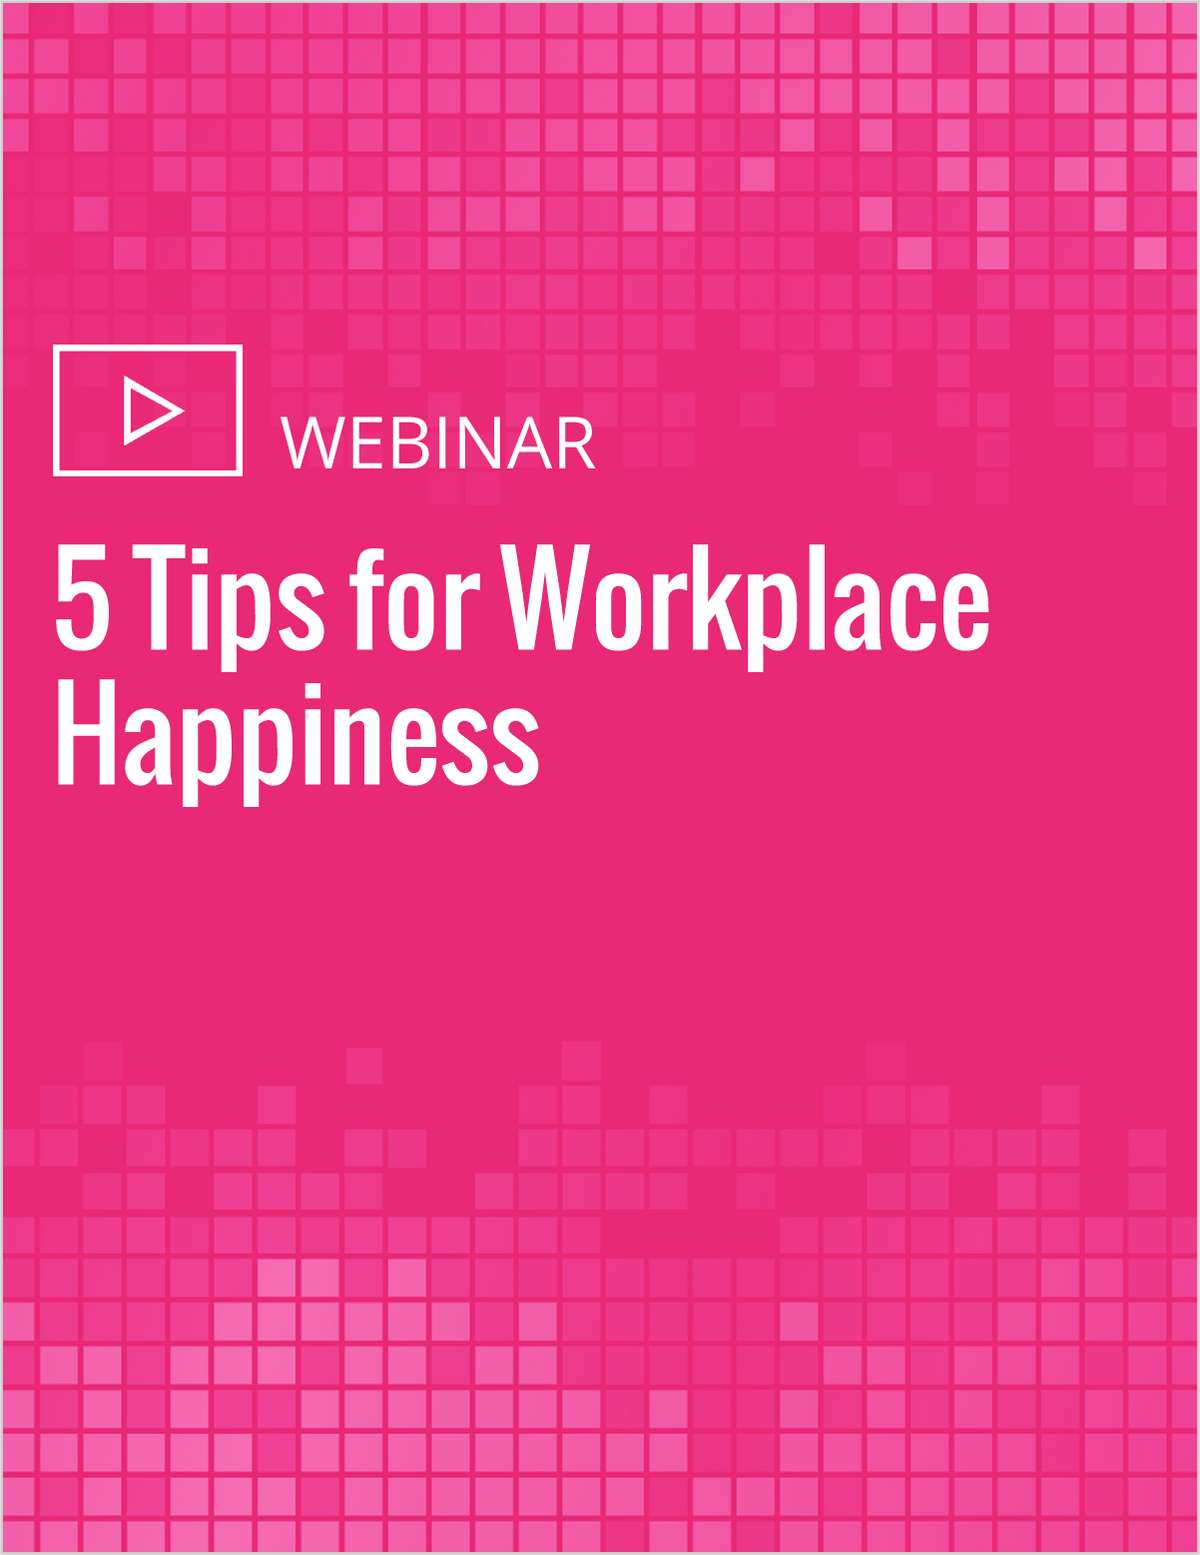 5 Tips for Workplace Happiness